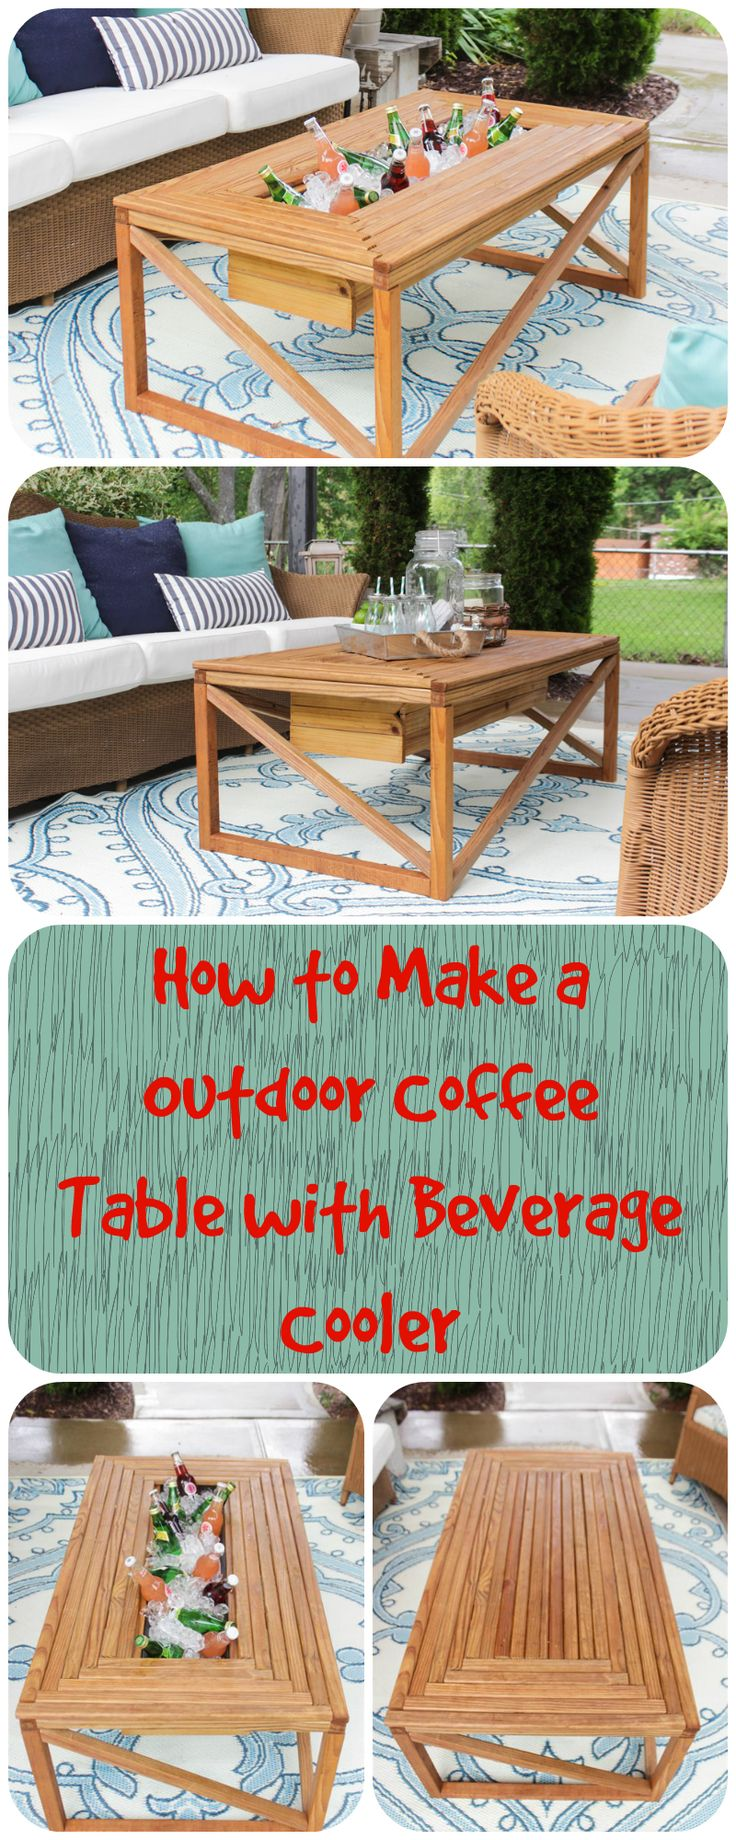 Make An Outdoor Coffee Table With Beverage Cooler. (Kids Wood Crafts How To  Make)